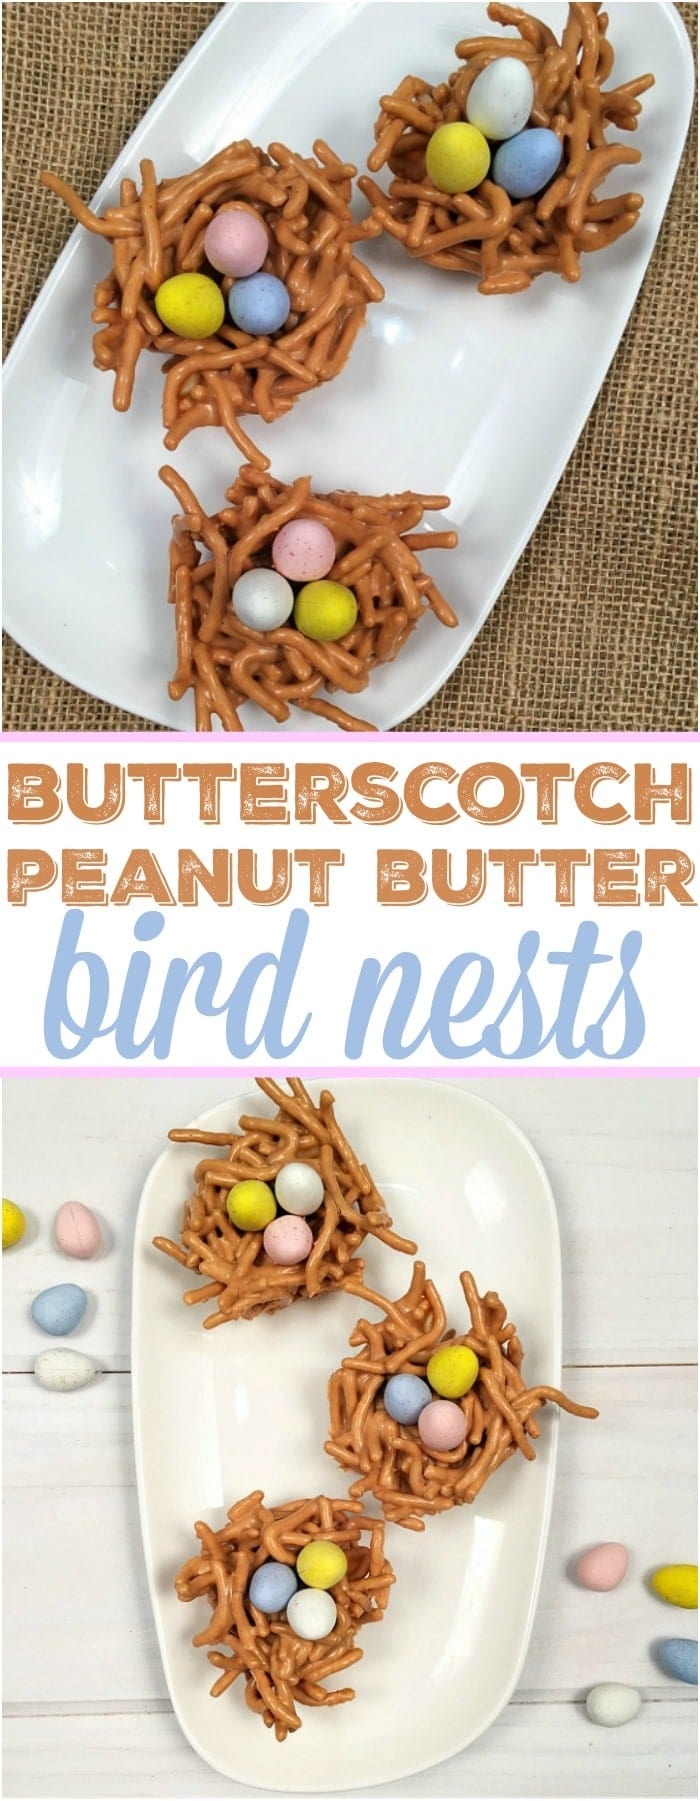 These easy butterscotch haystacks desserts are perfect Easter nests and so yummy too. A crunchy and creamy peanut butter treat with chocolate eggs in the shape of a bird nest they are a no bake dessert kids can help you make with a delicious butterscotch flavor.  #butterscotch #haystacks #nests #easter #dessert #easy #cute #eggs #chocolate #peanutbutter #nobake